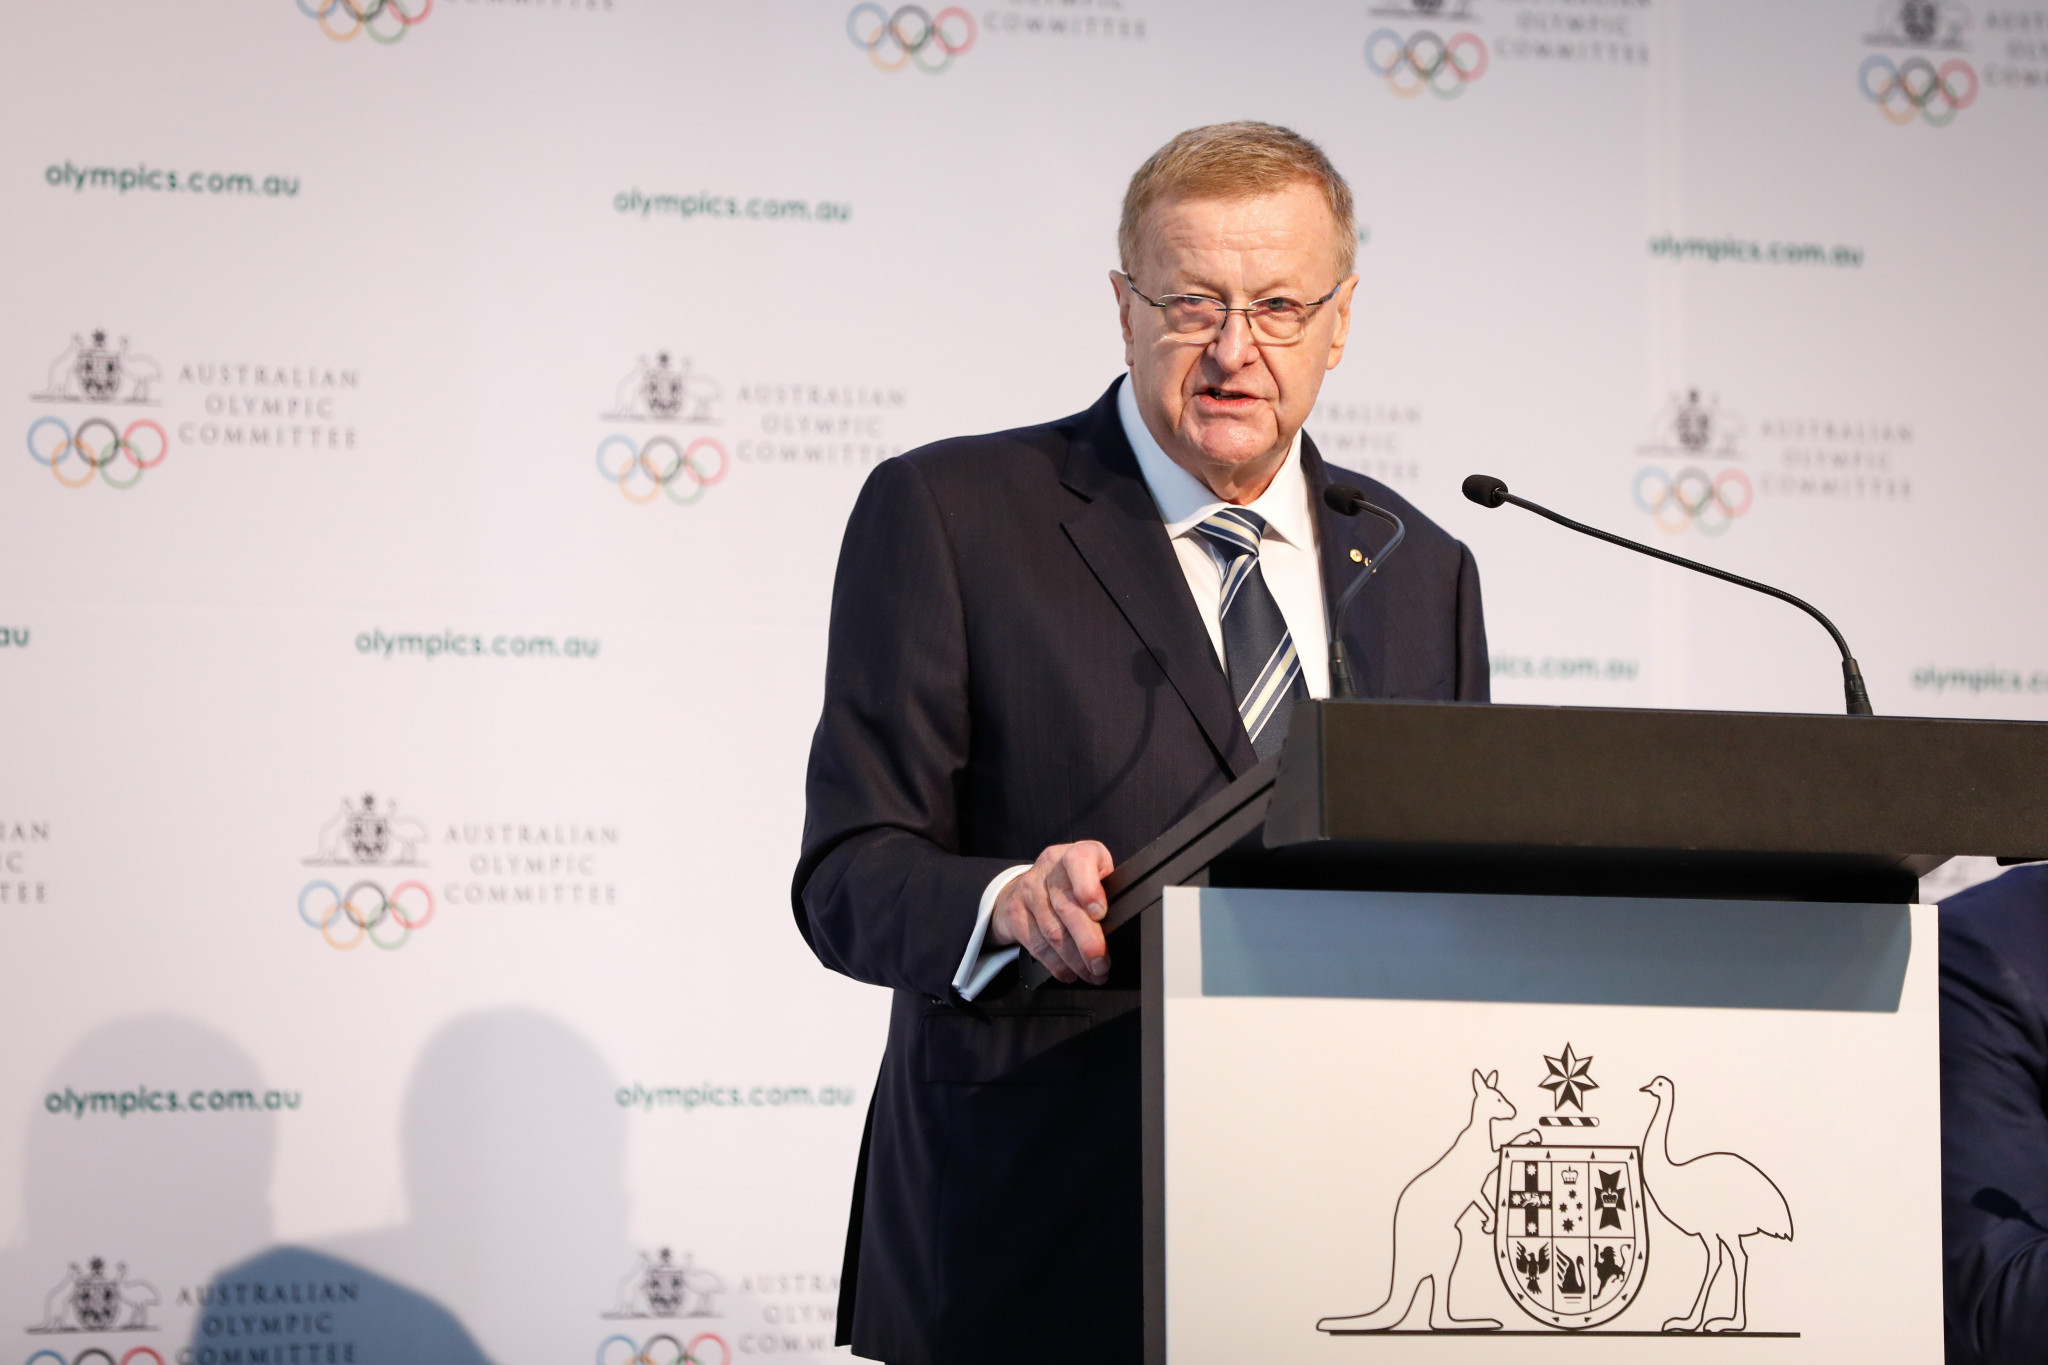 Australian Olympic Committee President John Coates will stay on as an IOC member beyond the age limit of 70 due to his importance to the organisation ©Getty Images